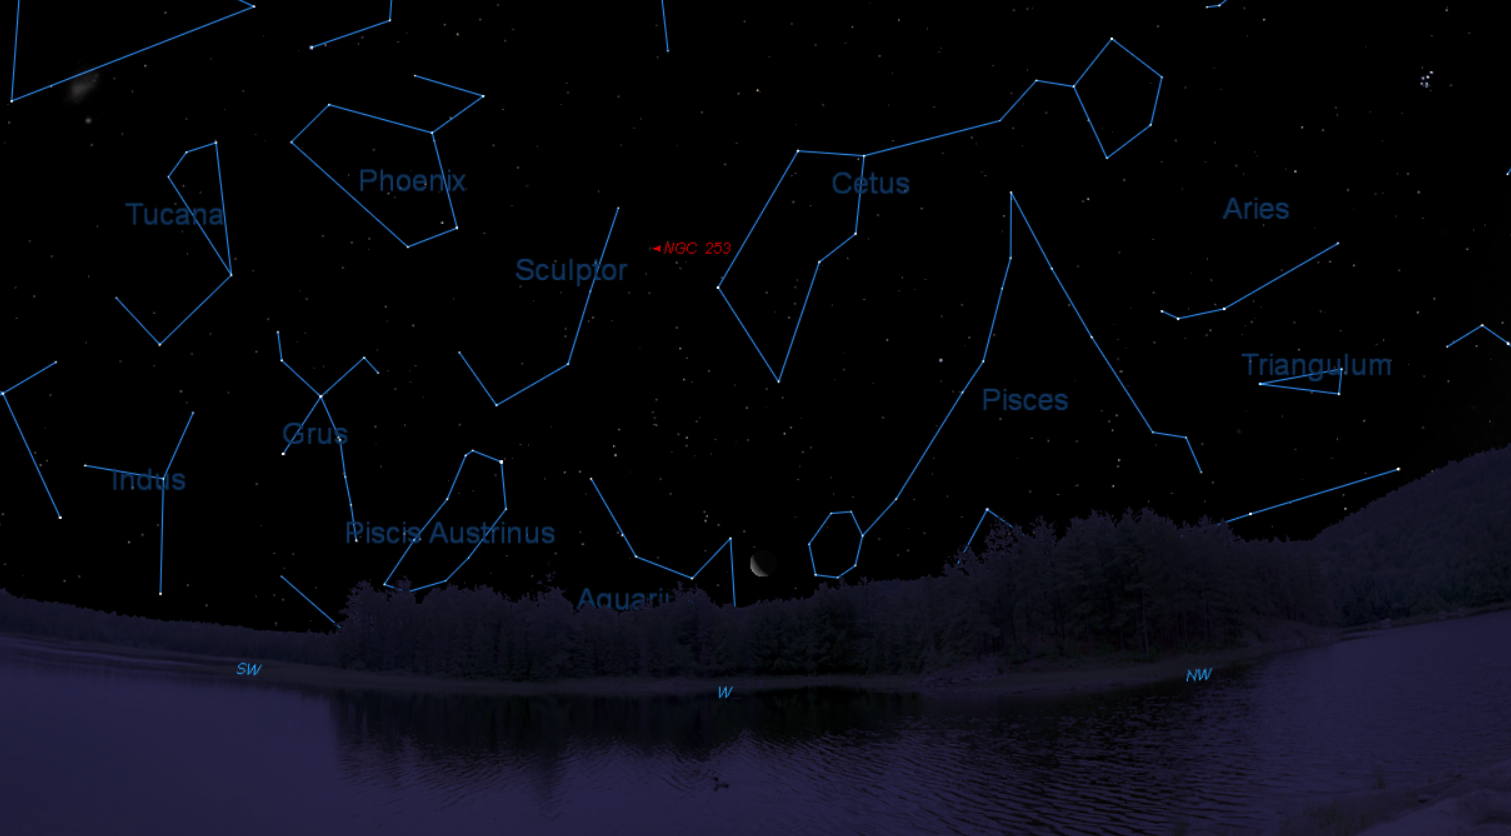 The position of NGC 253 when standing in Brisbane at approx 9:30pm on the 27th December. Image from Starry NIght 6.